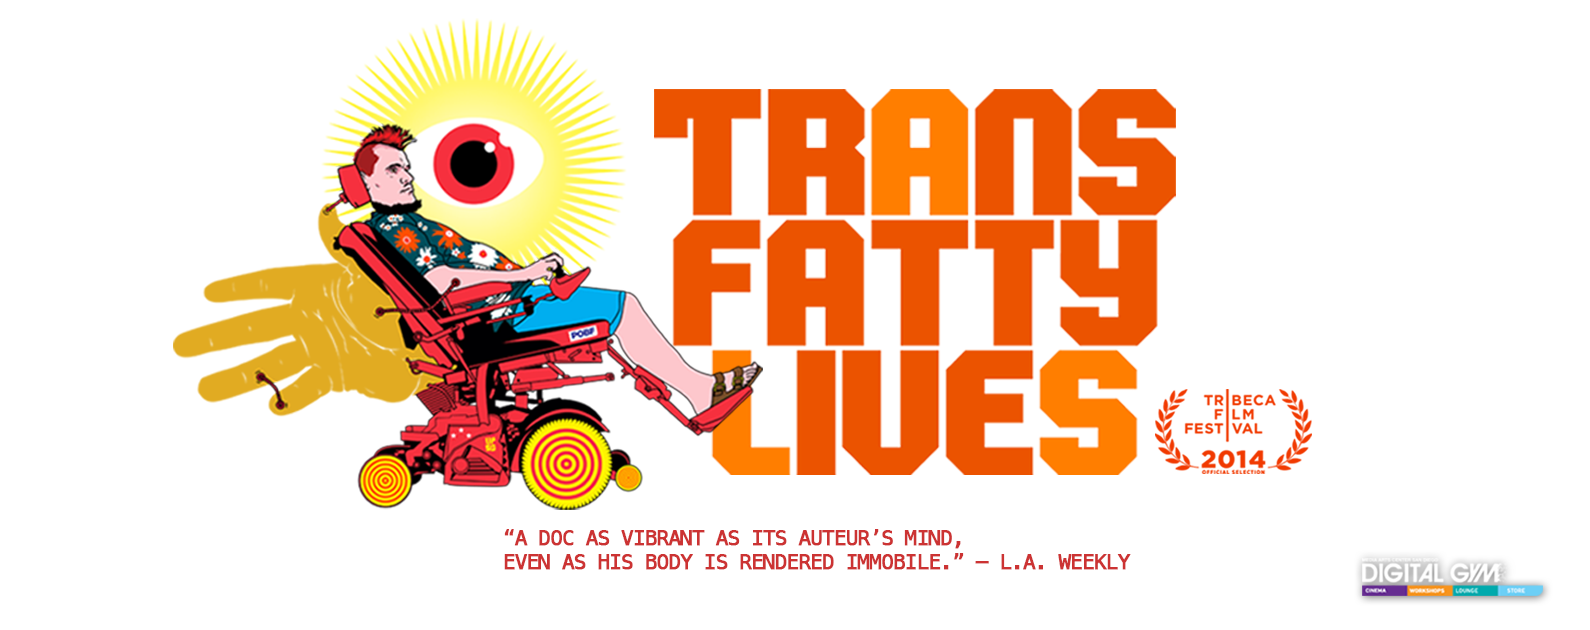 Acclaimed ALS Movie, TransFatty Lives, Now Playing in San Diego (Jan 8-14)